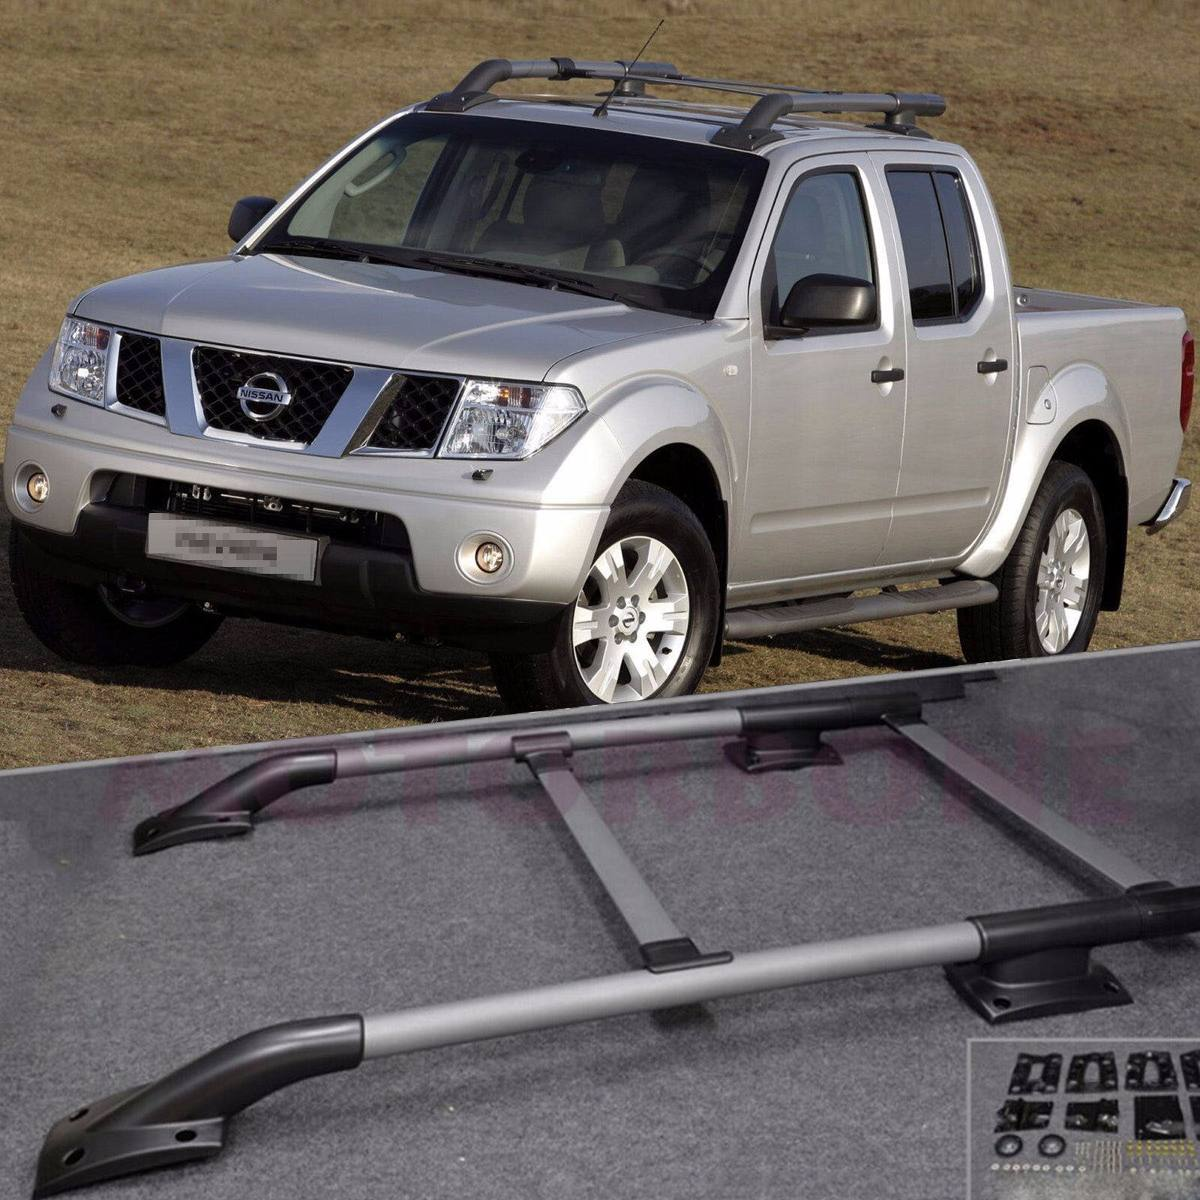 barras portaequipaje para nissan frontier 2005 2014 9 en mercado libre. Black Bedroom Furniture Sets. Home Design Ideas